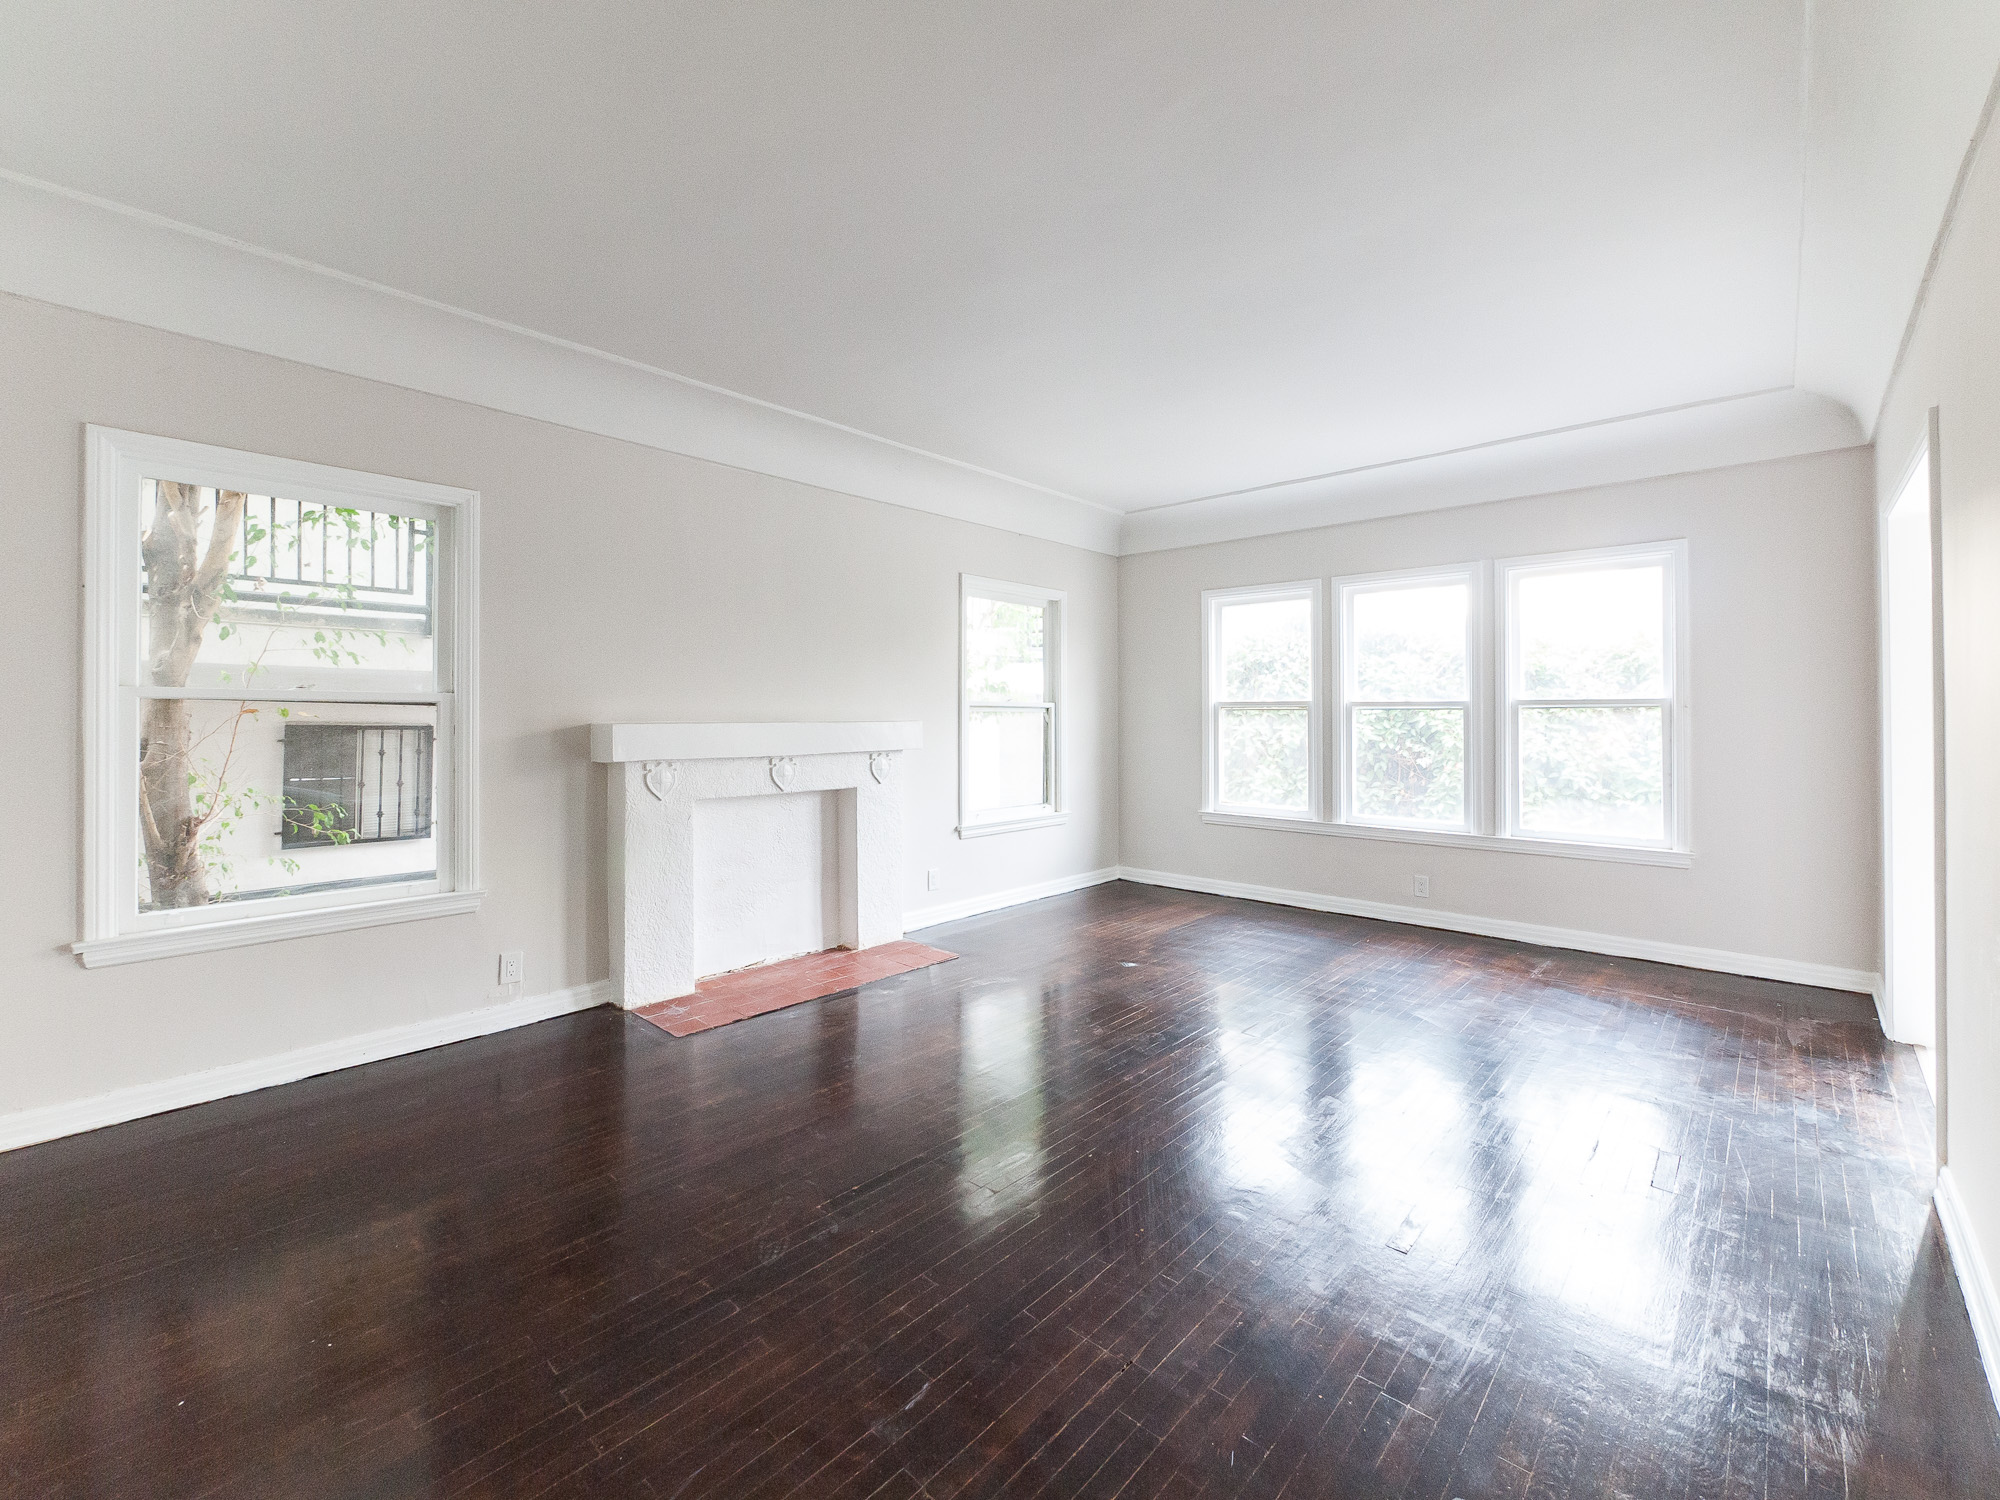 Just Too Gorgeous! Renovated - Huge, 1 Bed - Original Hardwoods - Fireplace-Corner Unit- Stainless Kit - Windows Everywhere!